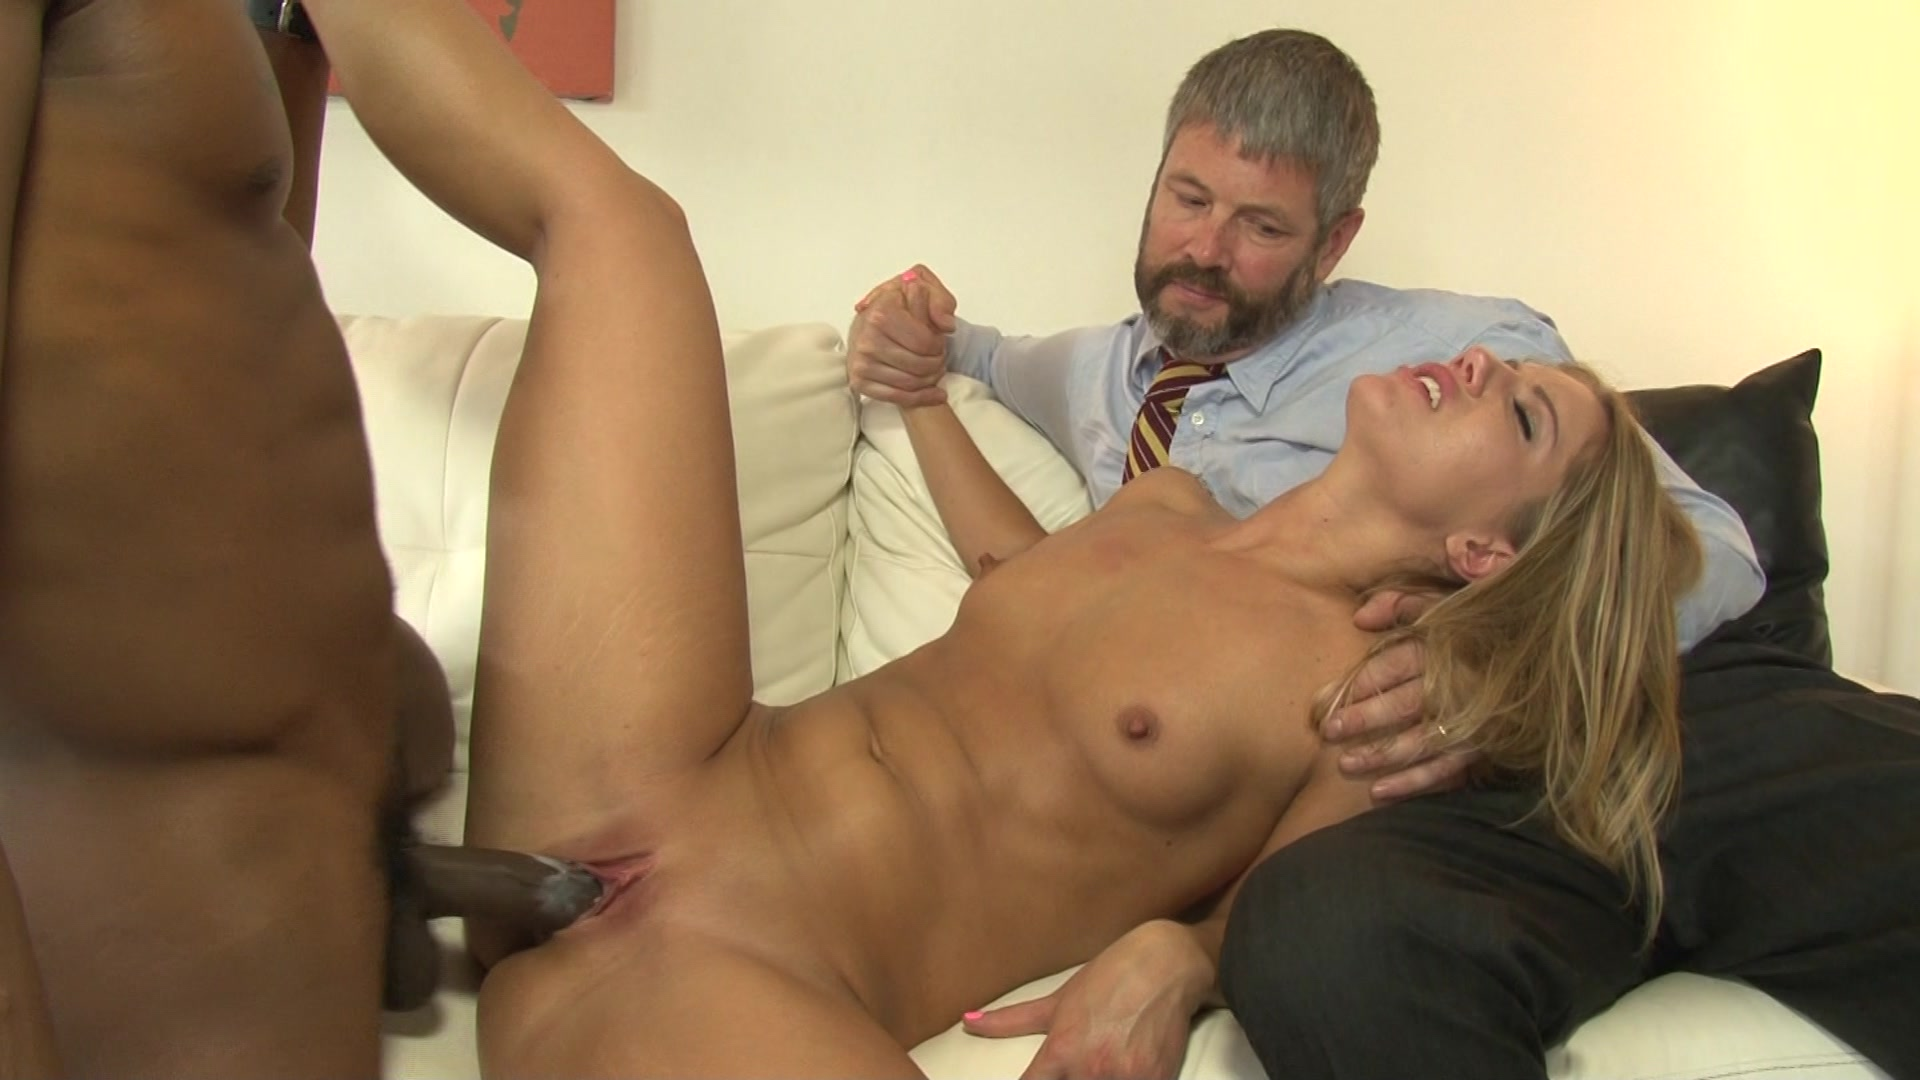 I watched him fuck my wife, behari xxx video dawnlod